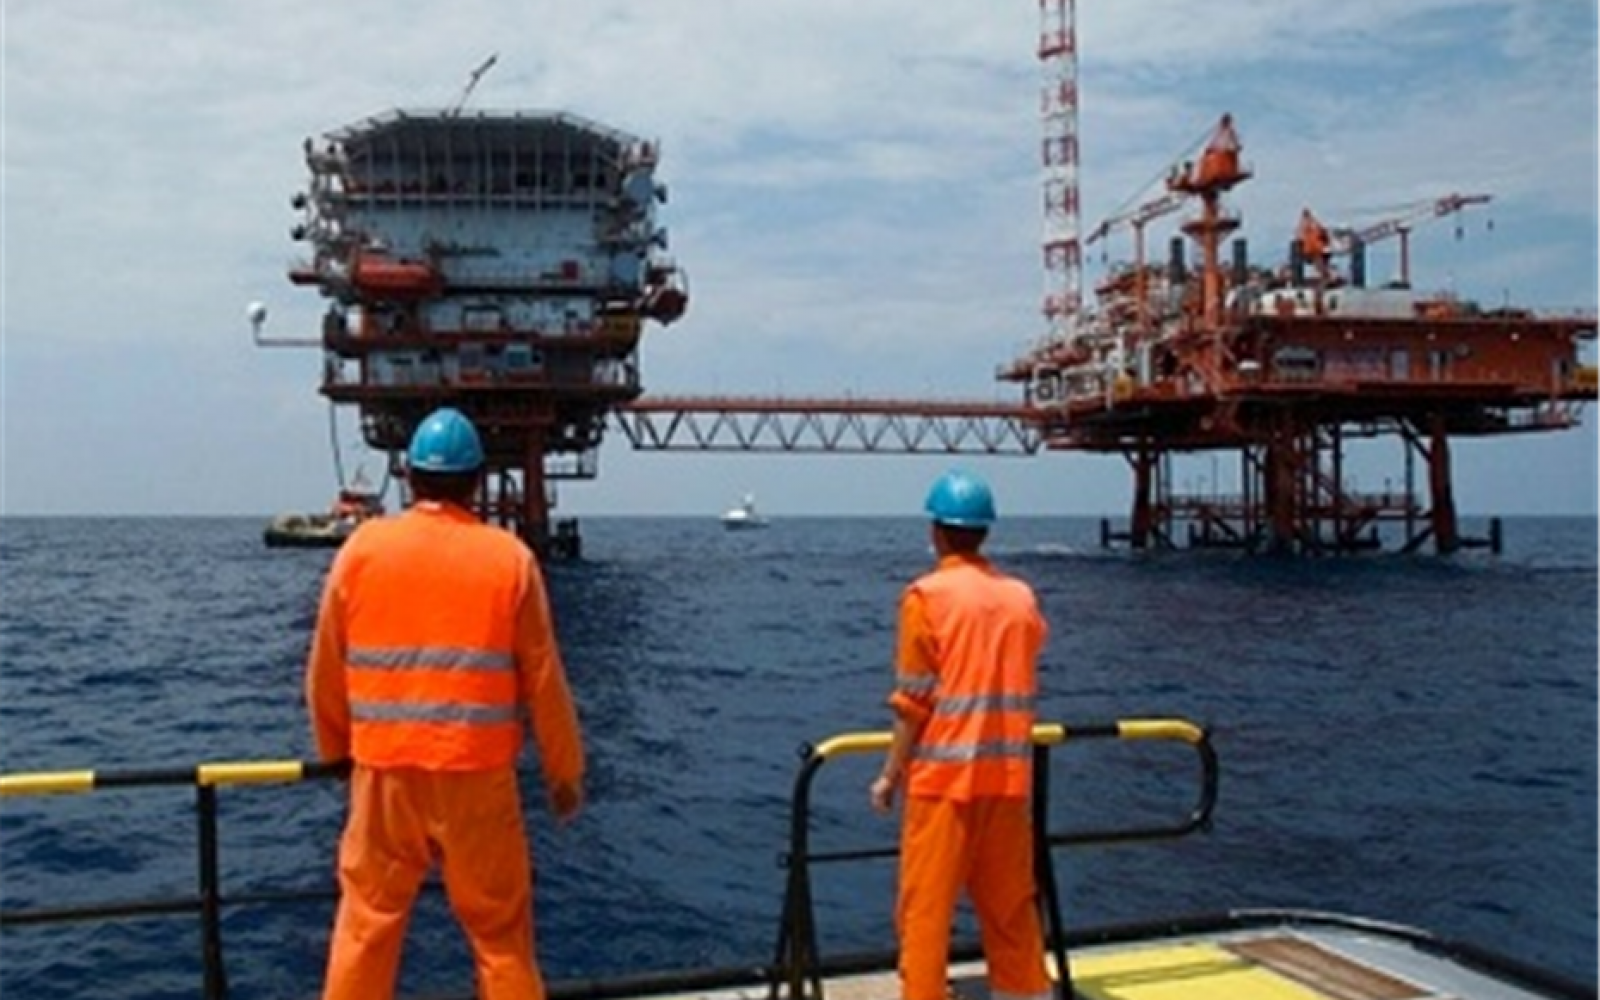 Planning: 60.6 billion pounds of oil and gas sector investments in 2020/202